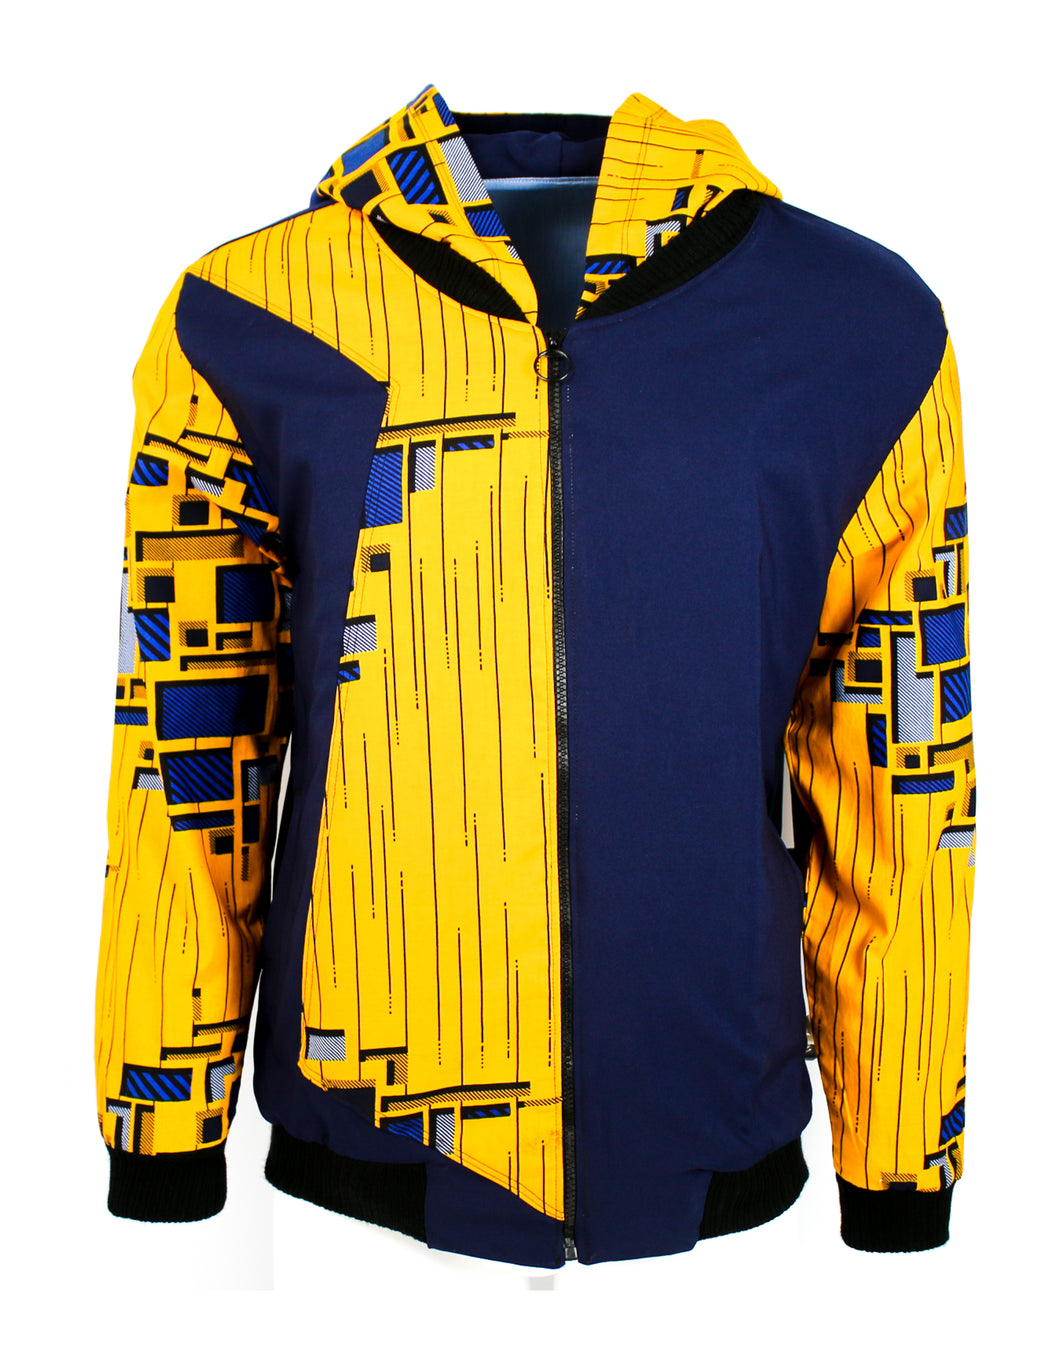 Golden Yellow on Navy Blue with Blue and Grey Rectangles